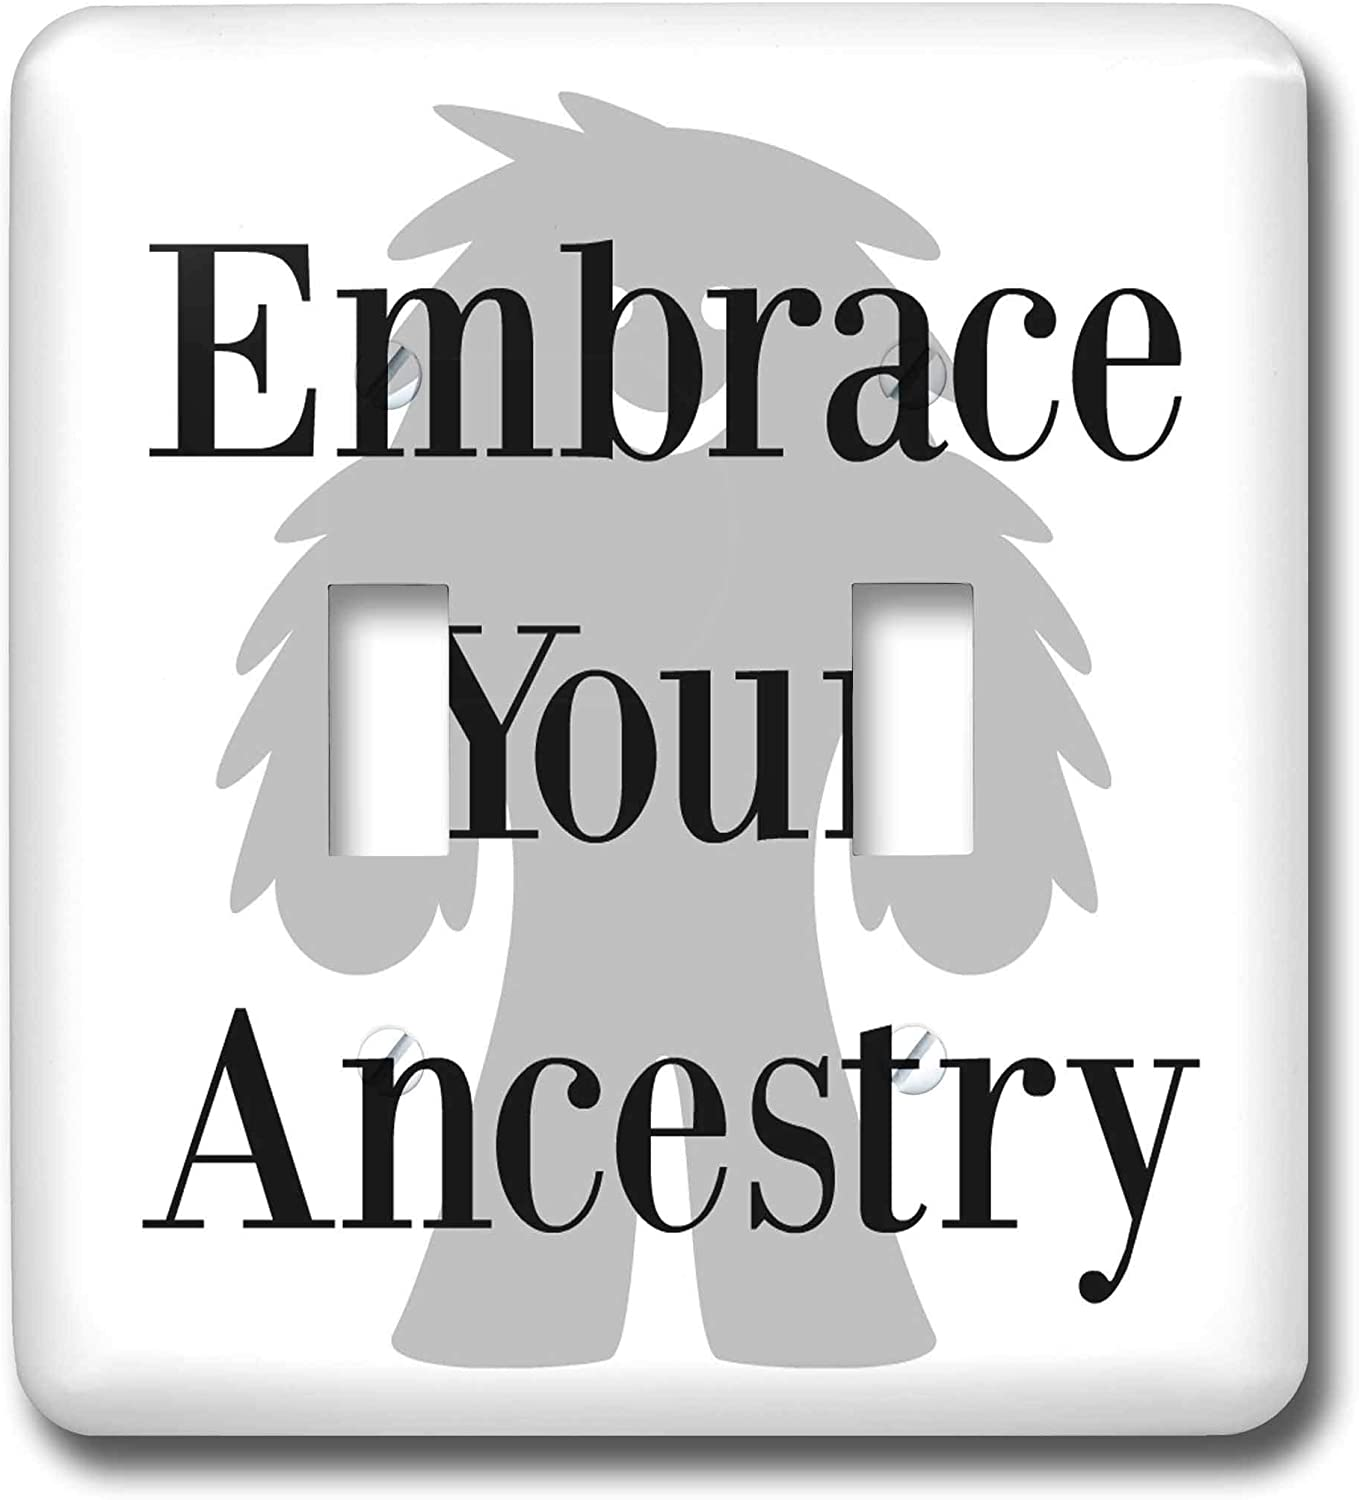 3dRose Carrie Merchant 3drose Quote - Image of Embrace Your Ancestry - double toggle switch (lsp_308333_2)